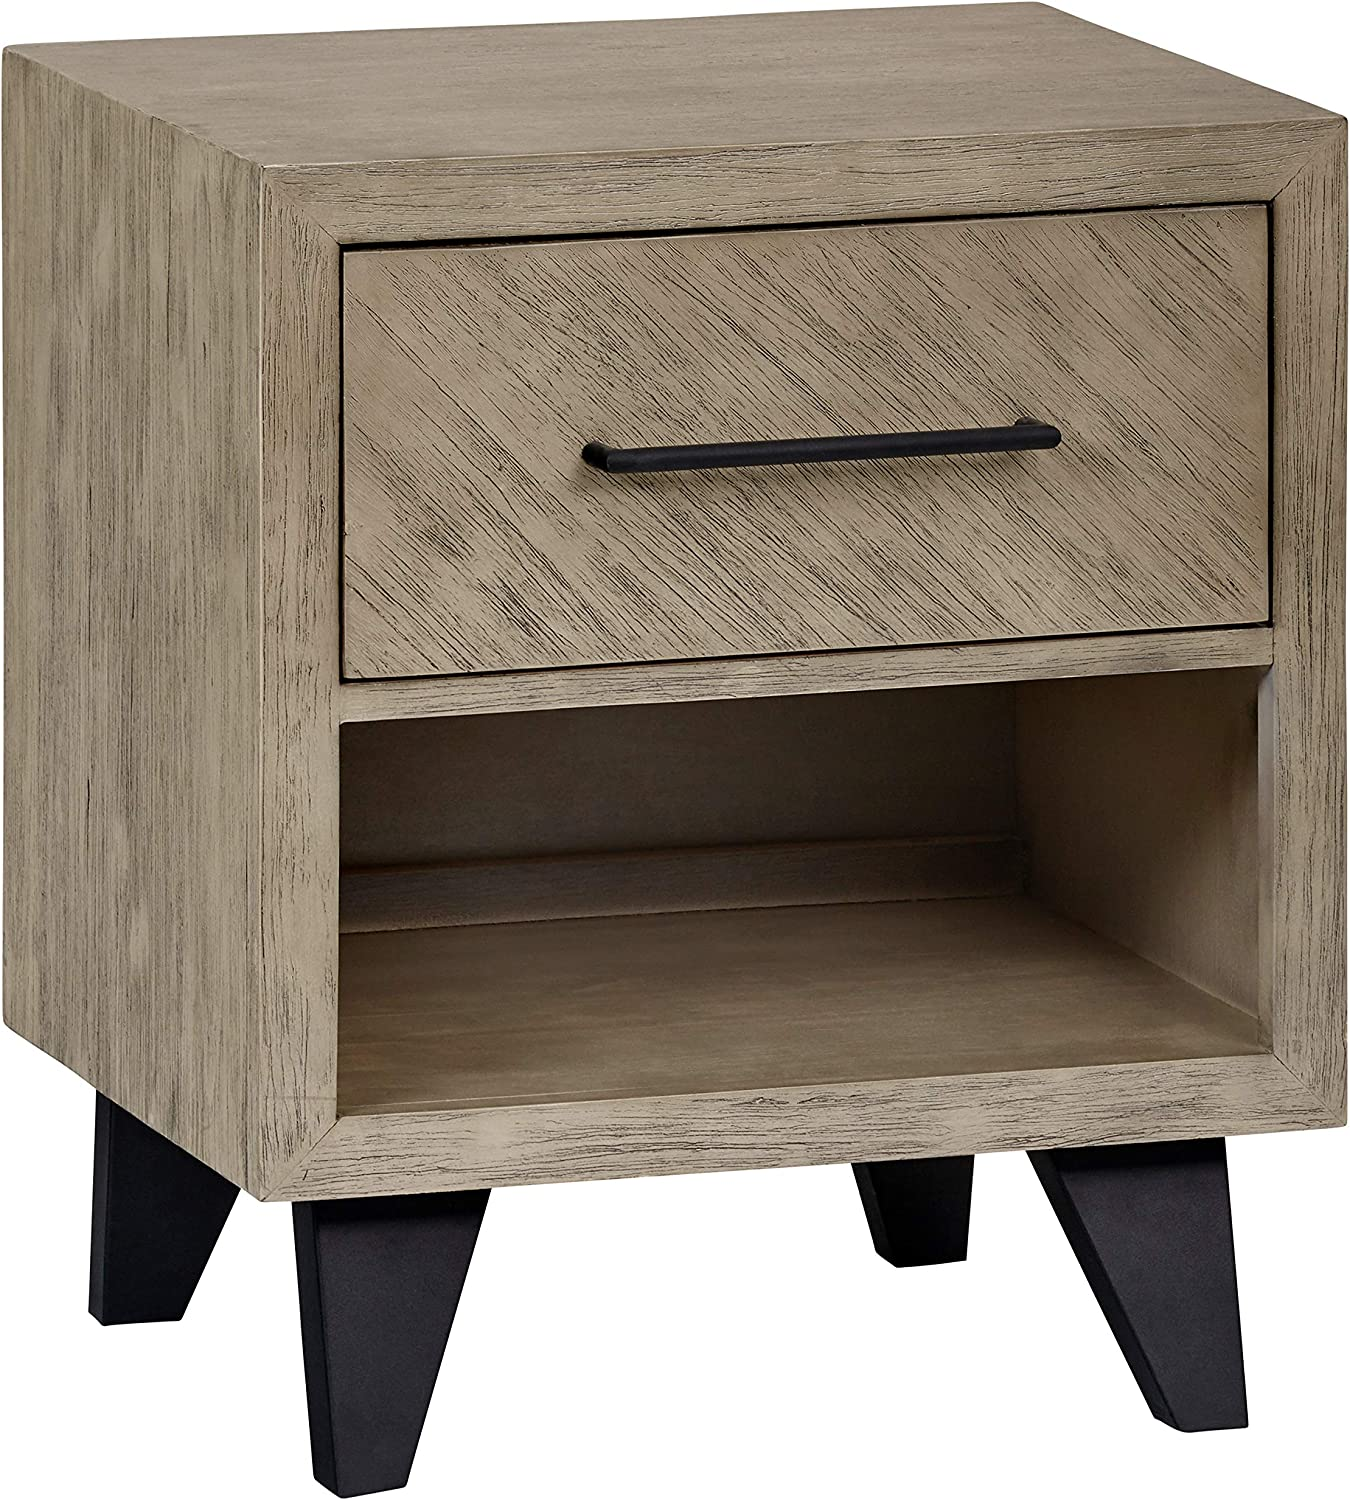 Amazon Brand – Stone & Beam Baird Cube-Shaped Acacia Nightstand with Legs, 22